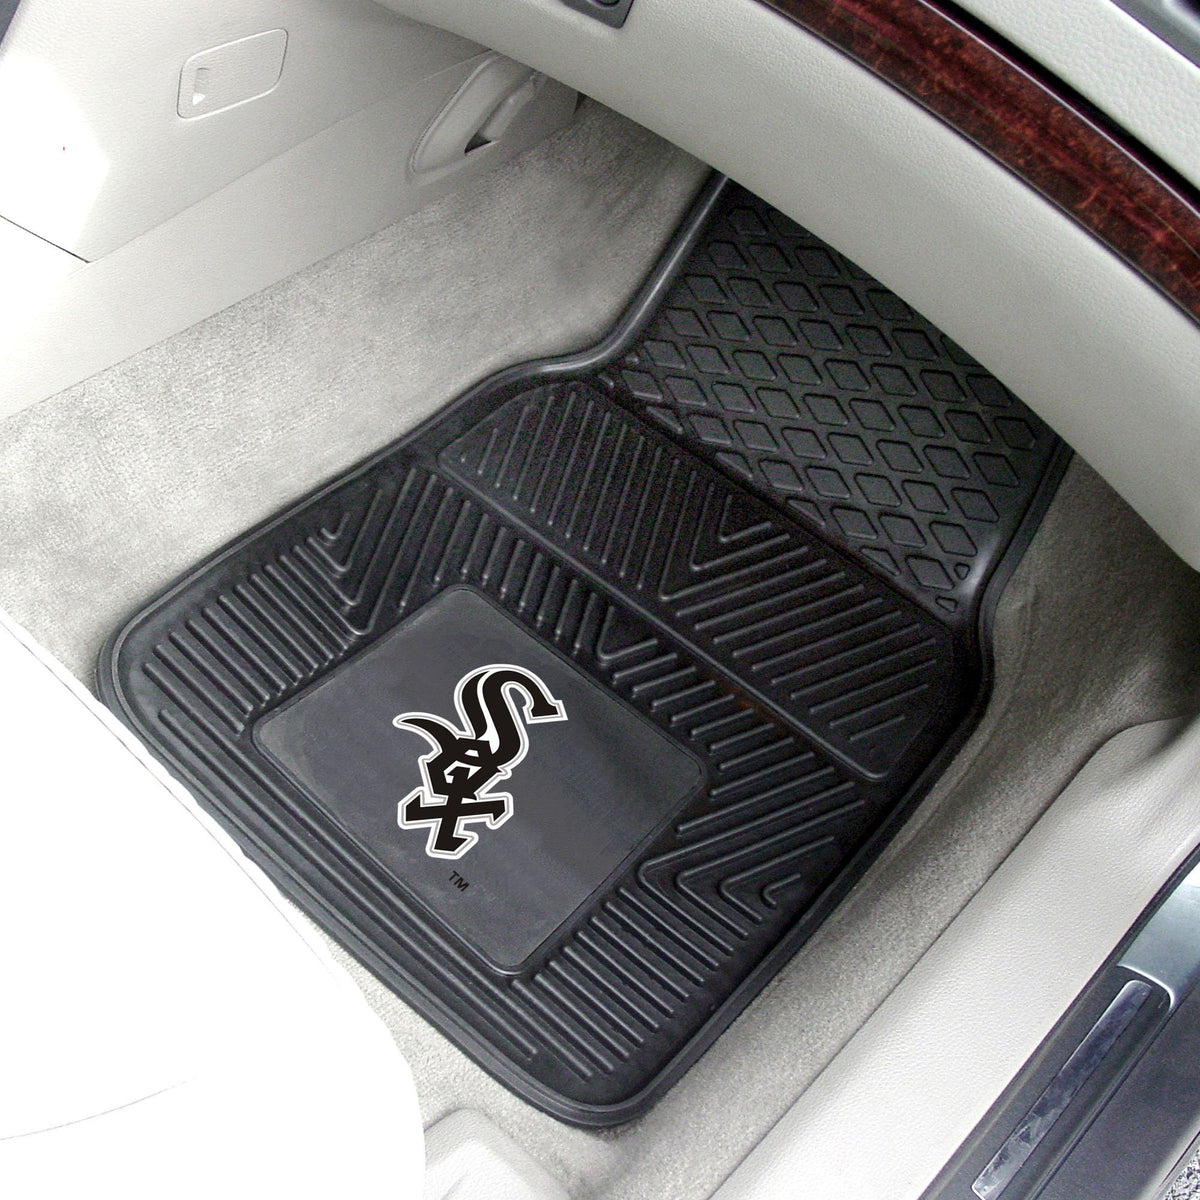 MLB - Vinyl Car Mat, 2-Piece Set MLB Mats, Front Car Mats, 2-pc Vinyl Car Mat Set, MLB, Auto Fan Mats Chicago White Sox